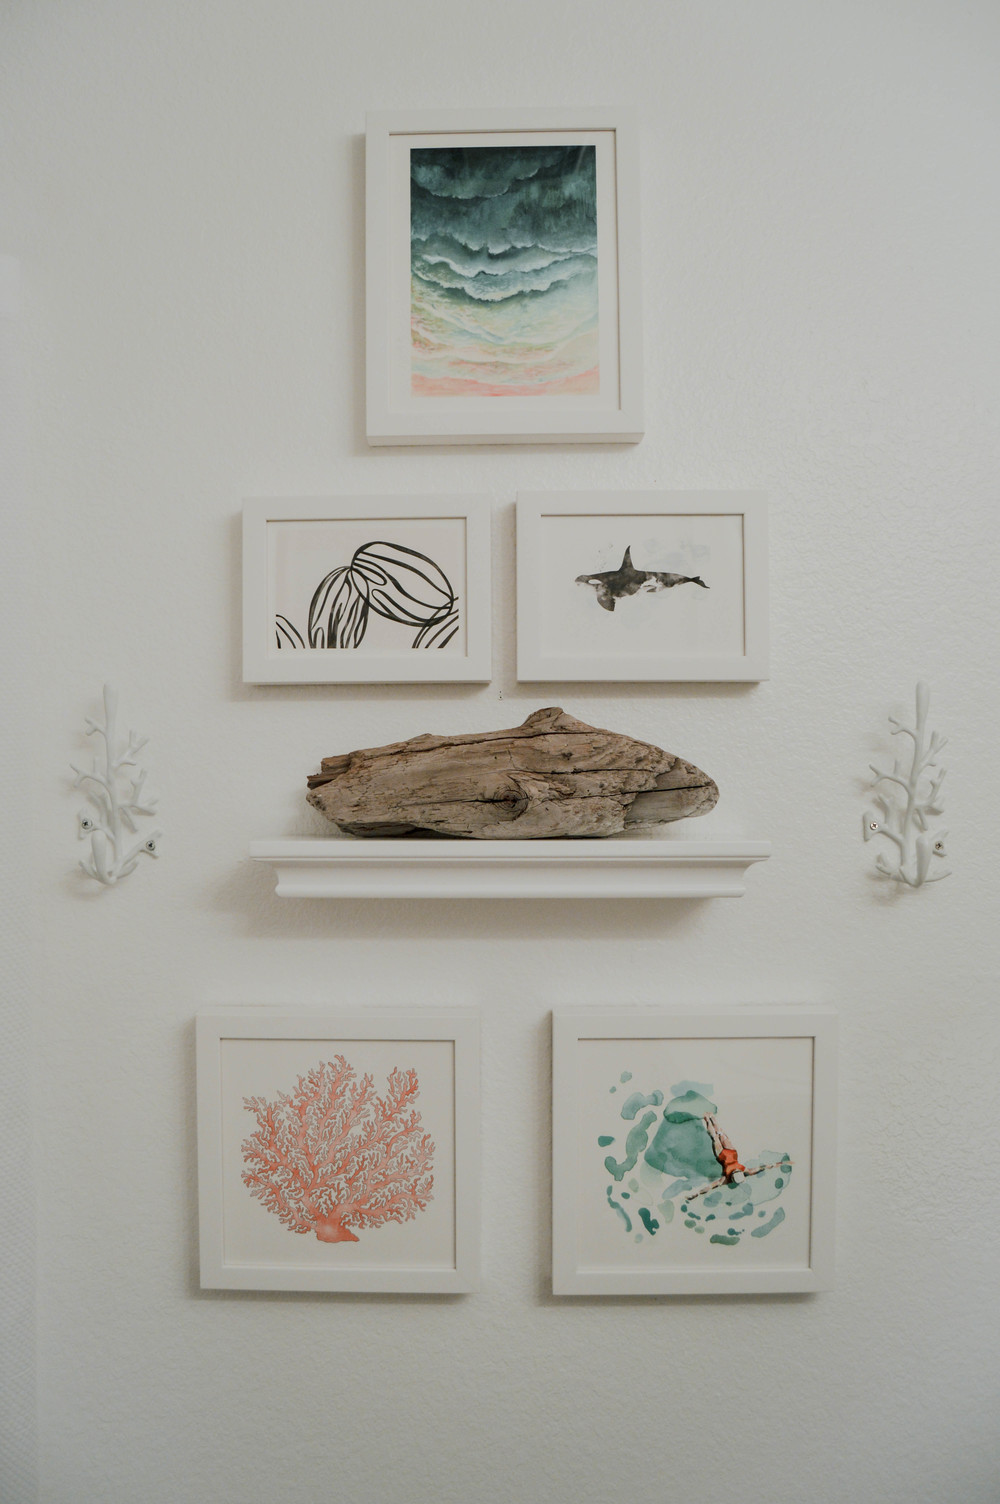 "From Top, Left to Right: ""Ombre Waves"" by Honeybunch Studio, ""Almond Milk"" by Carolyn MacLaren, ""Whale Series Three"" by Shirley Lin Schneider, ""Painted Coral"" by Natalie Groves, & ""Float"" by Betty Hatchett. All prints available right now at Minted.com"